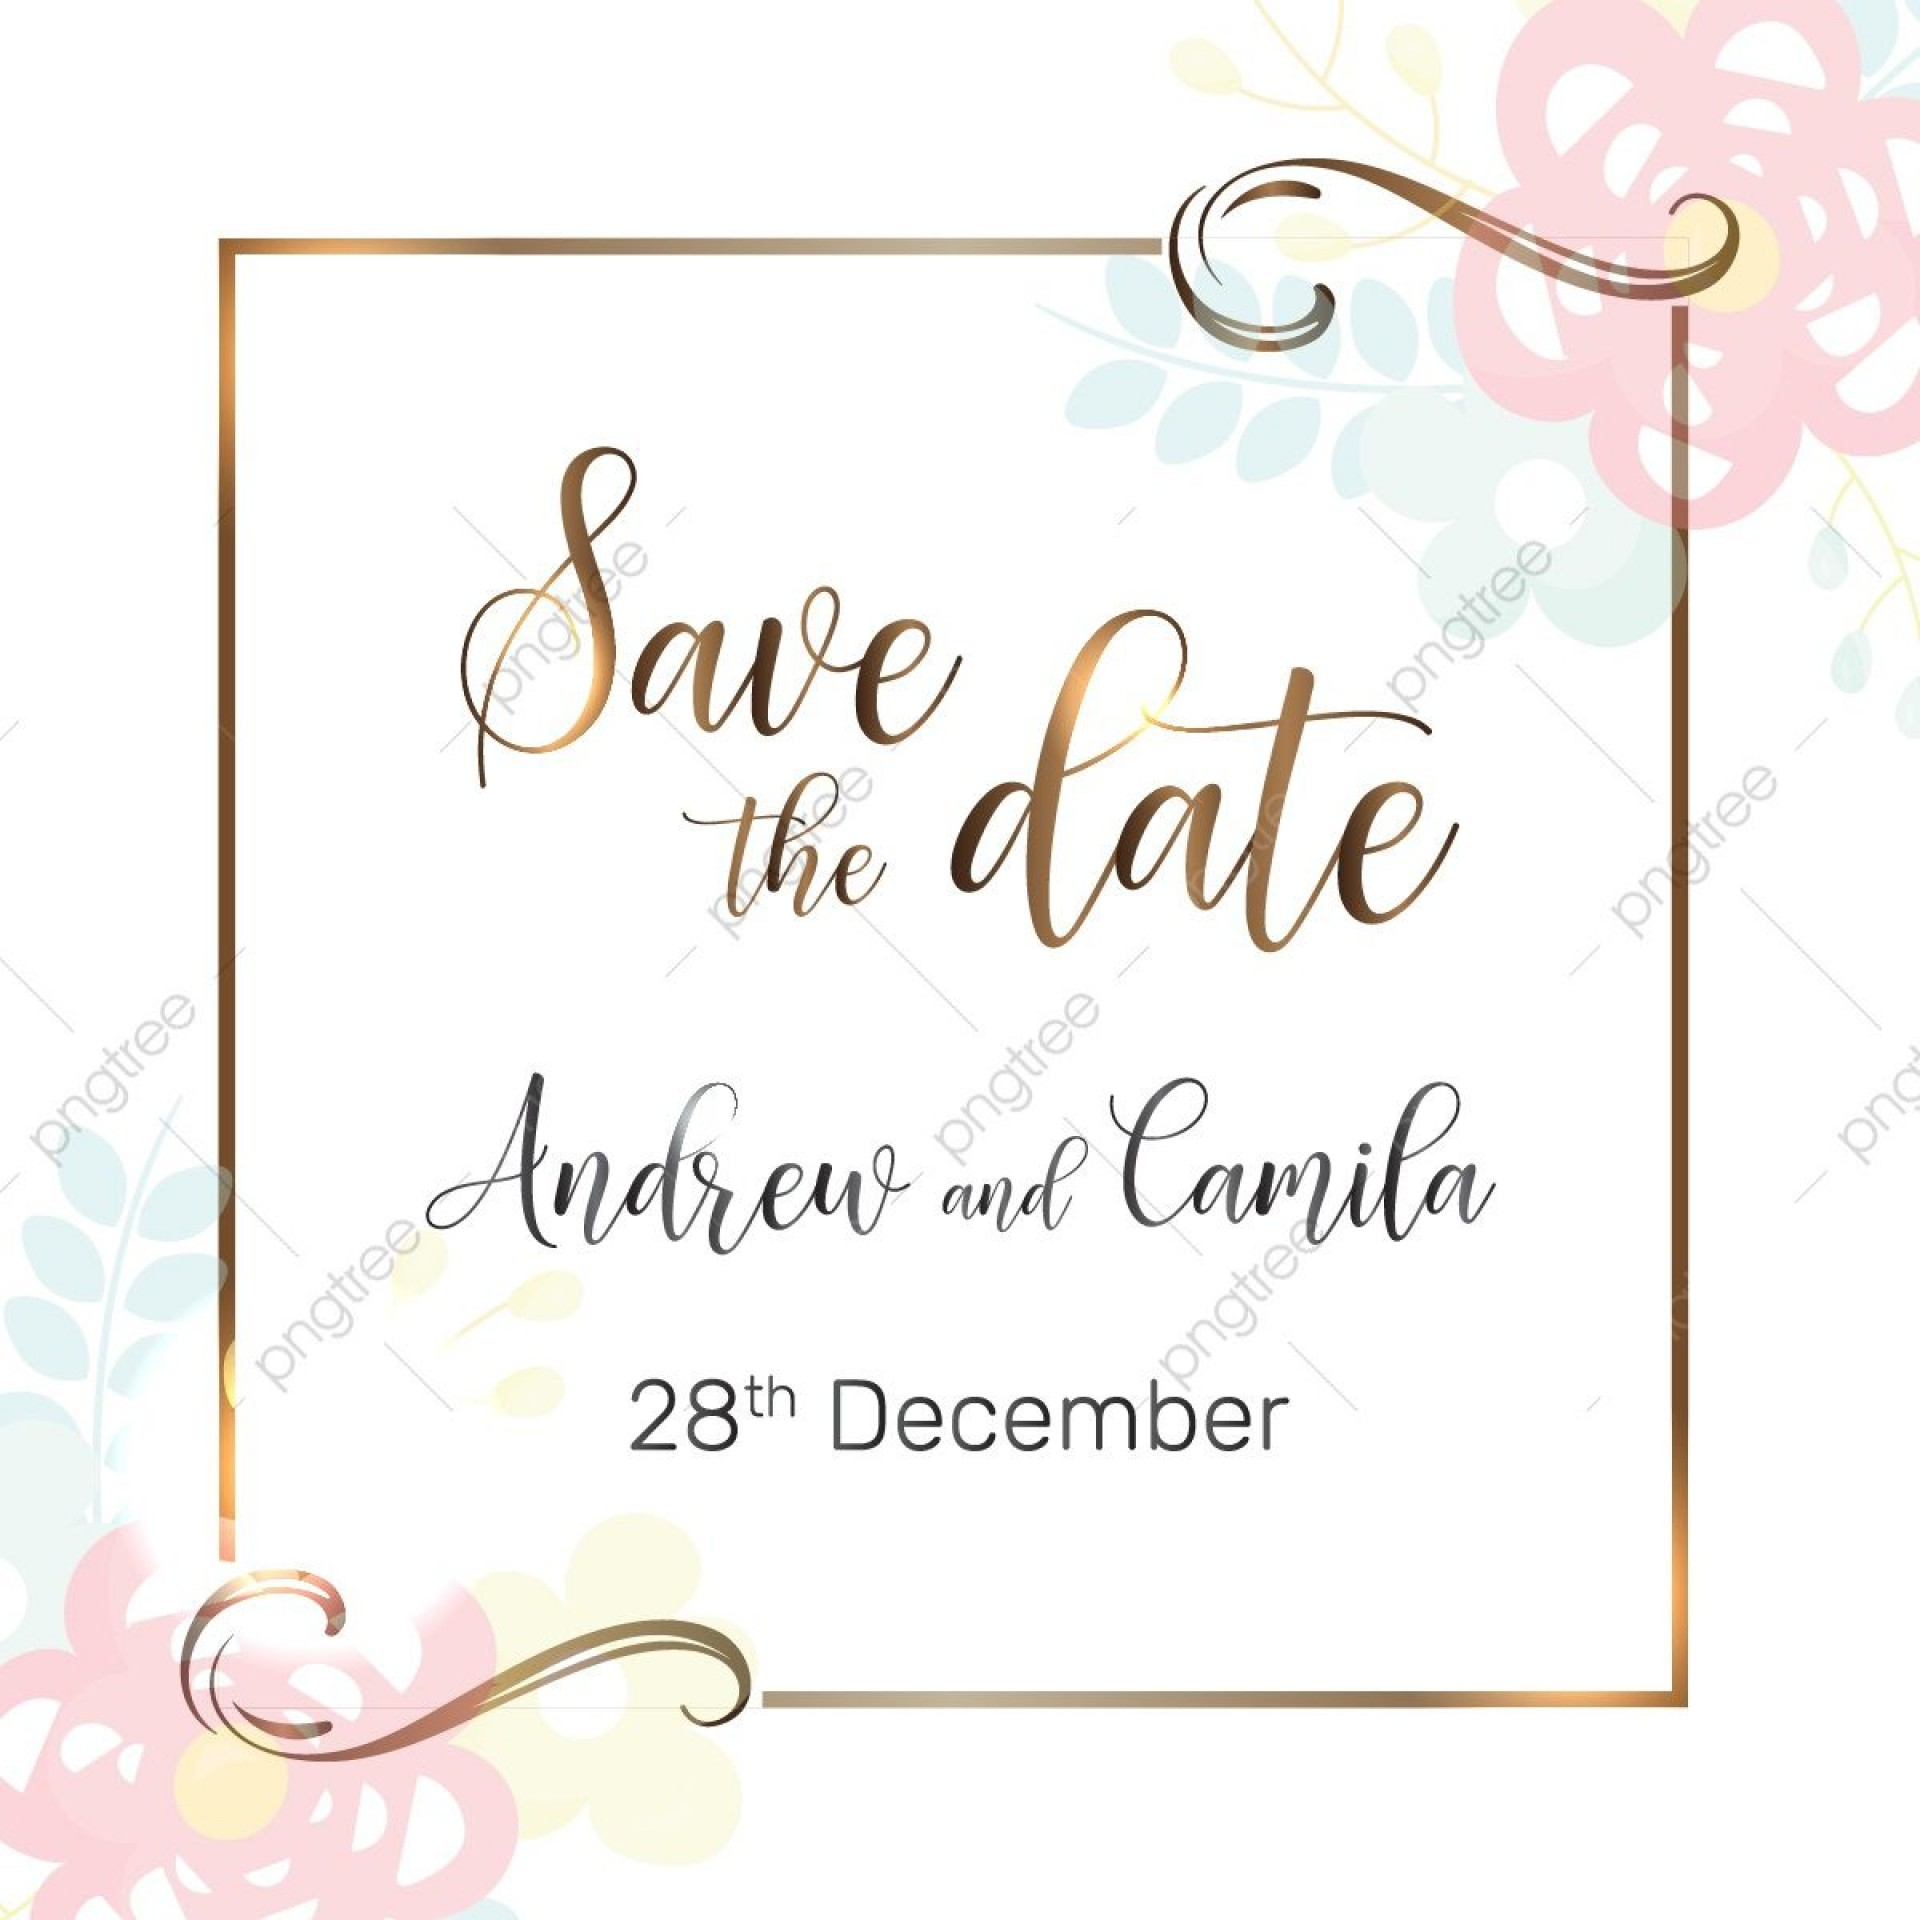 007 Unique Save The Date Template Word Concept  Free Customizable For Holiday Party1920